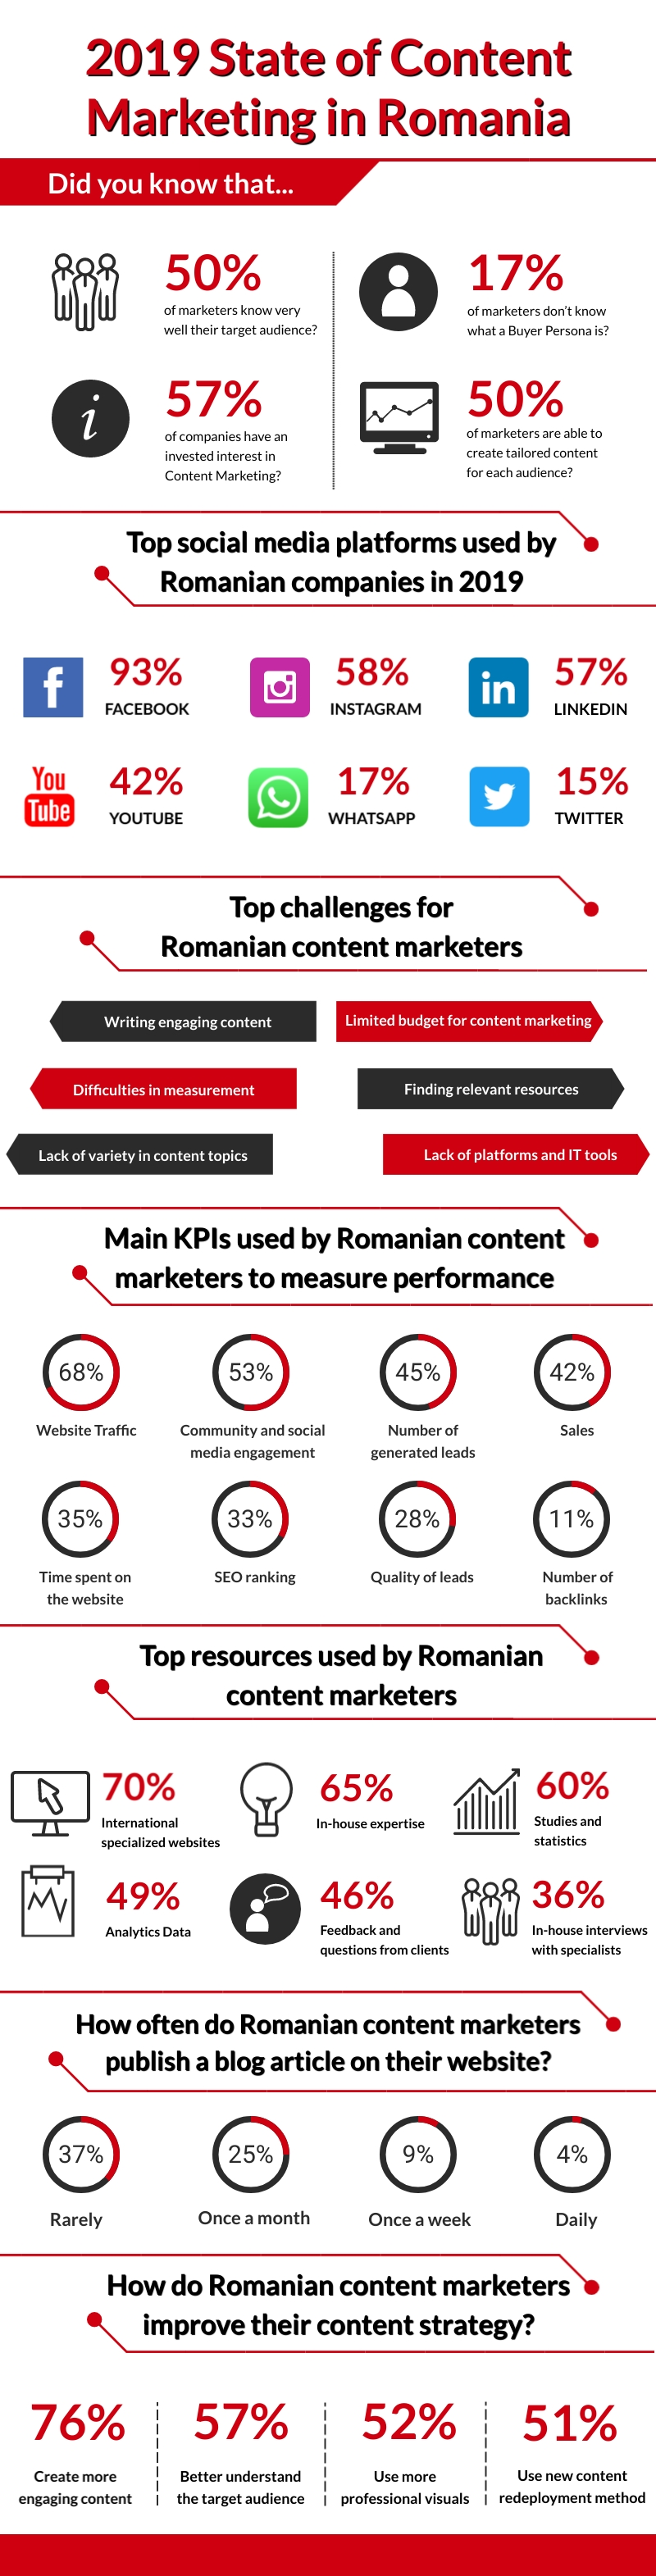 2019-State-of-Content-Marketing-in-Romania (2) (1)